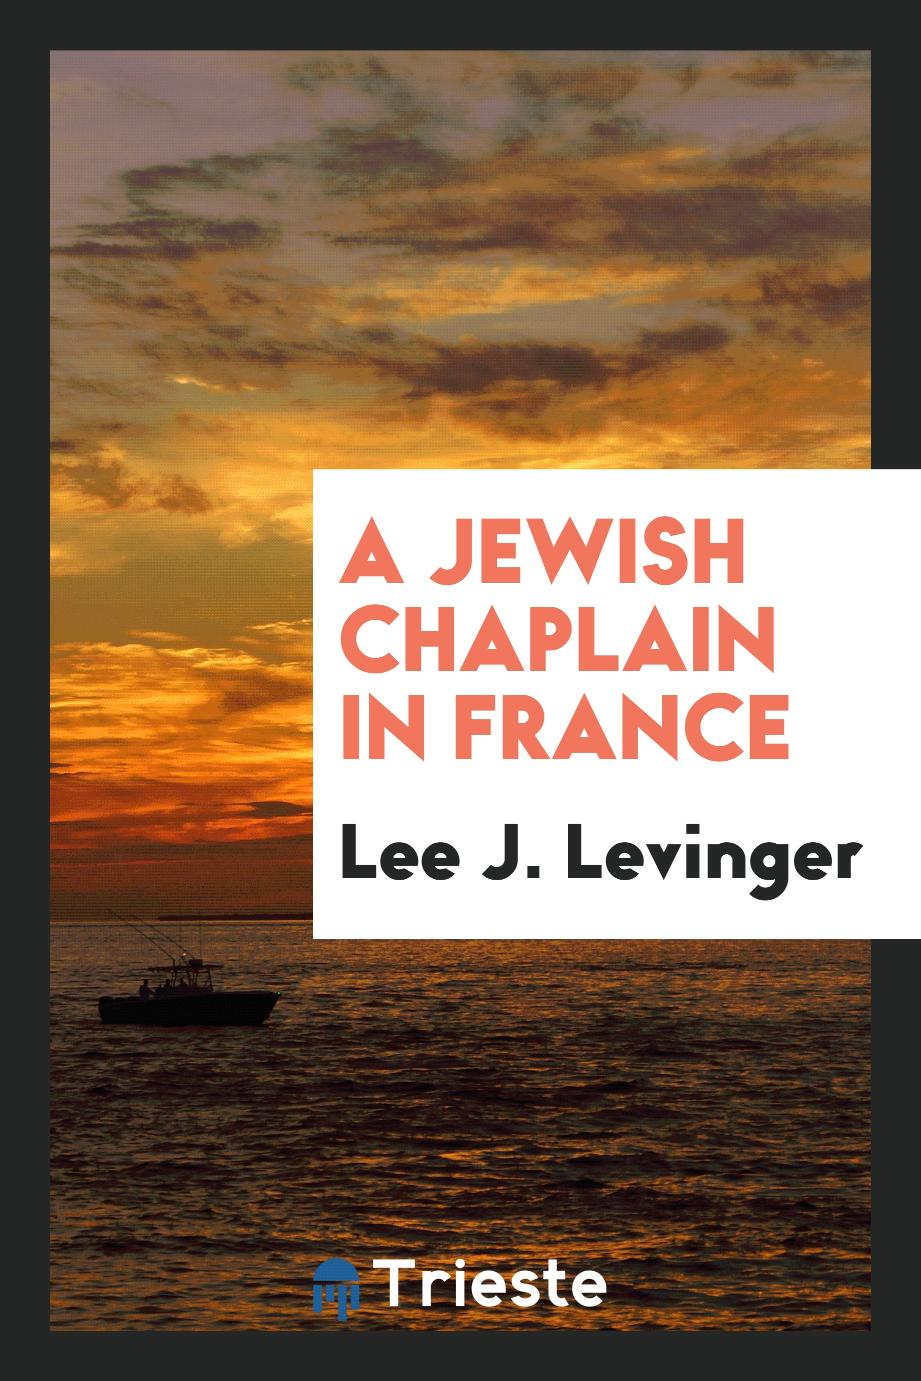 Lee J. Levinger - A Jewish chaplain in France